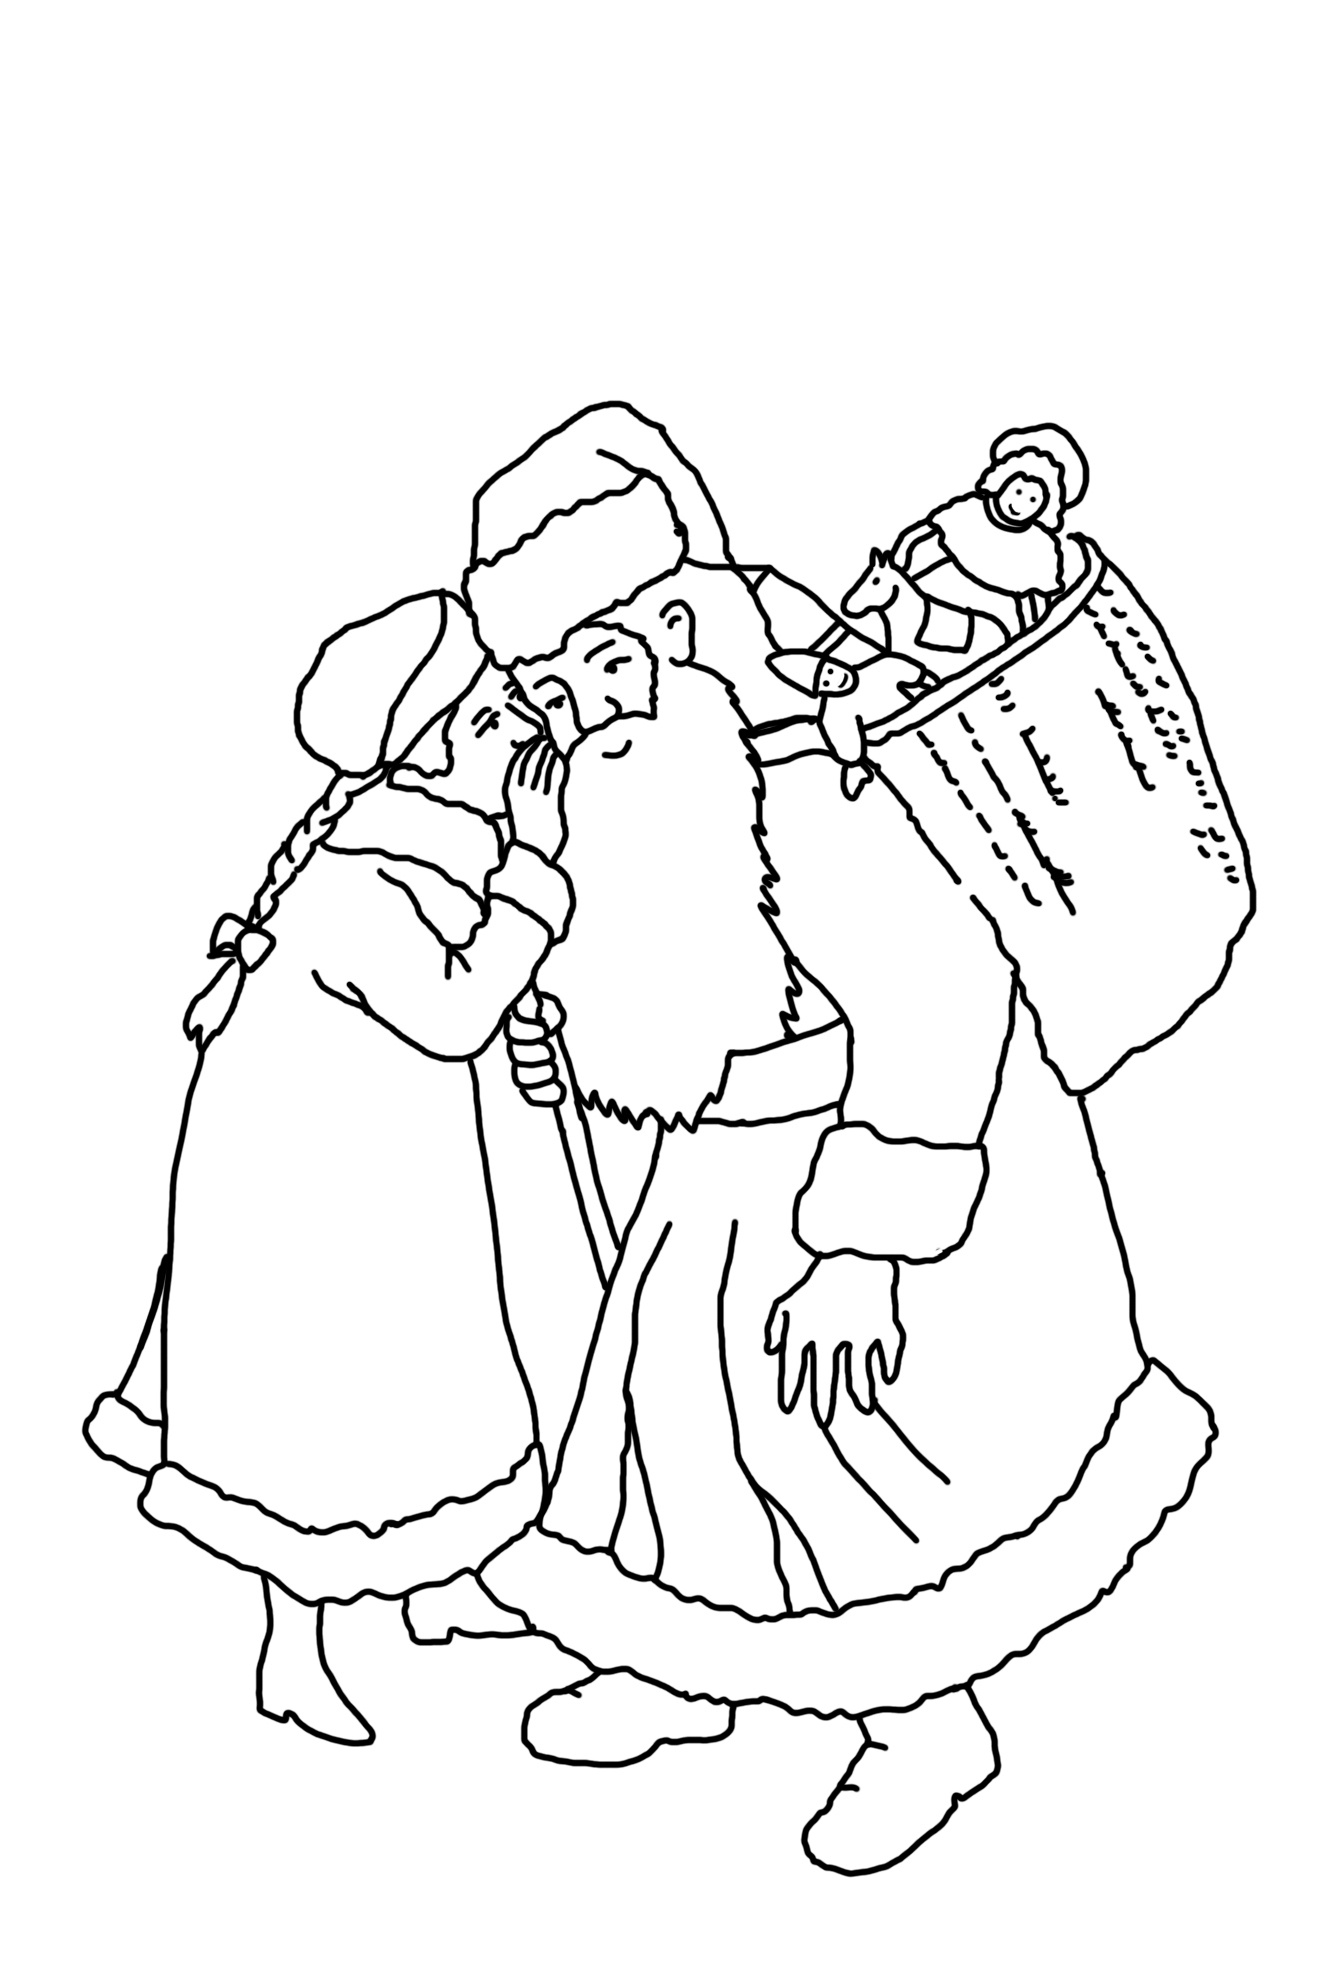 Coloring Ideas : Christmas Story Coloring Book Johanna Basford - Free Printable Christmas Story Coloring Pages